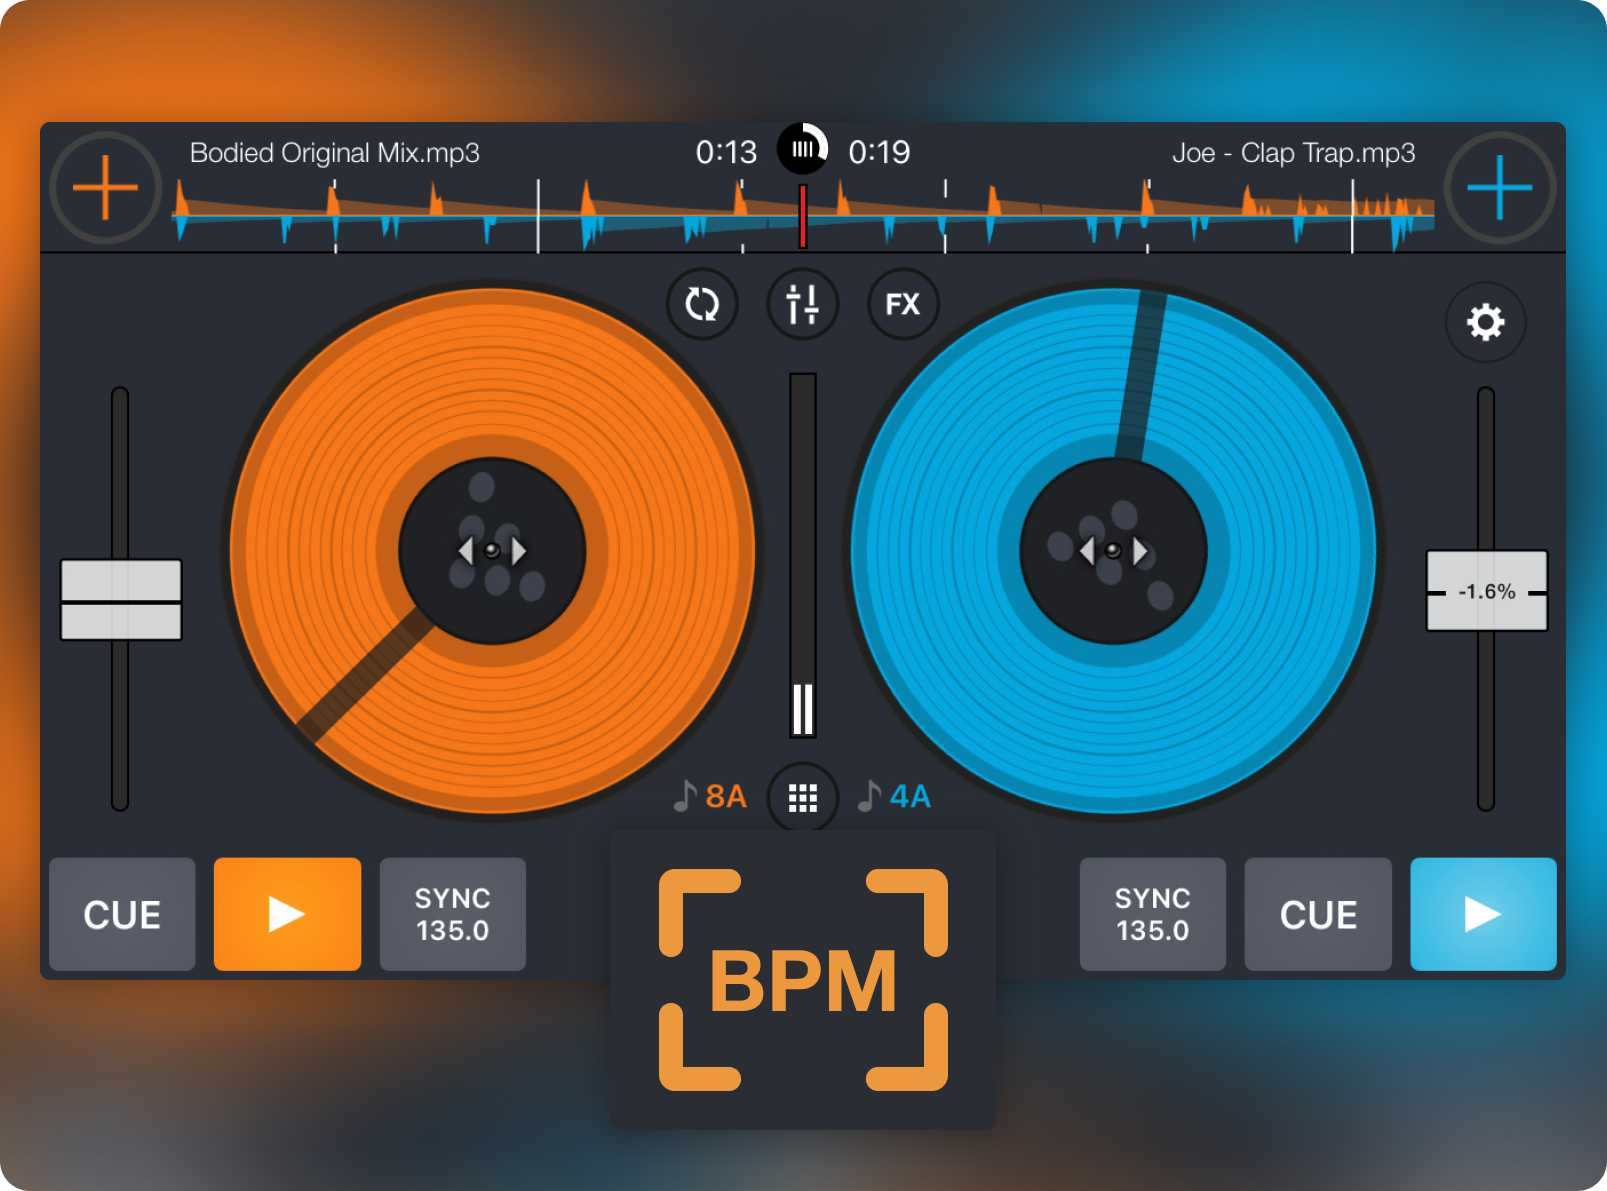 Cross DJ Free's turntable view and BPM detection